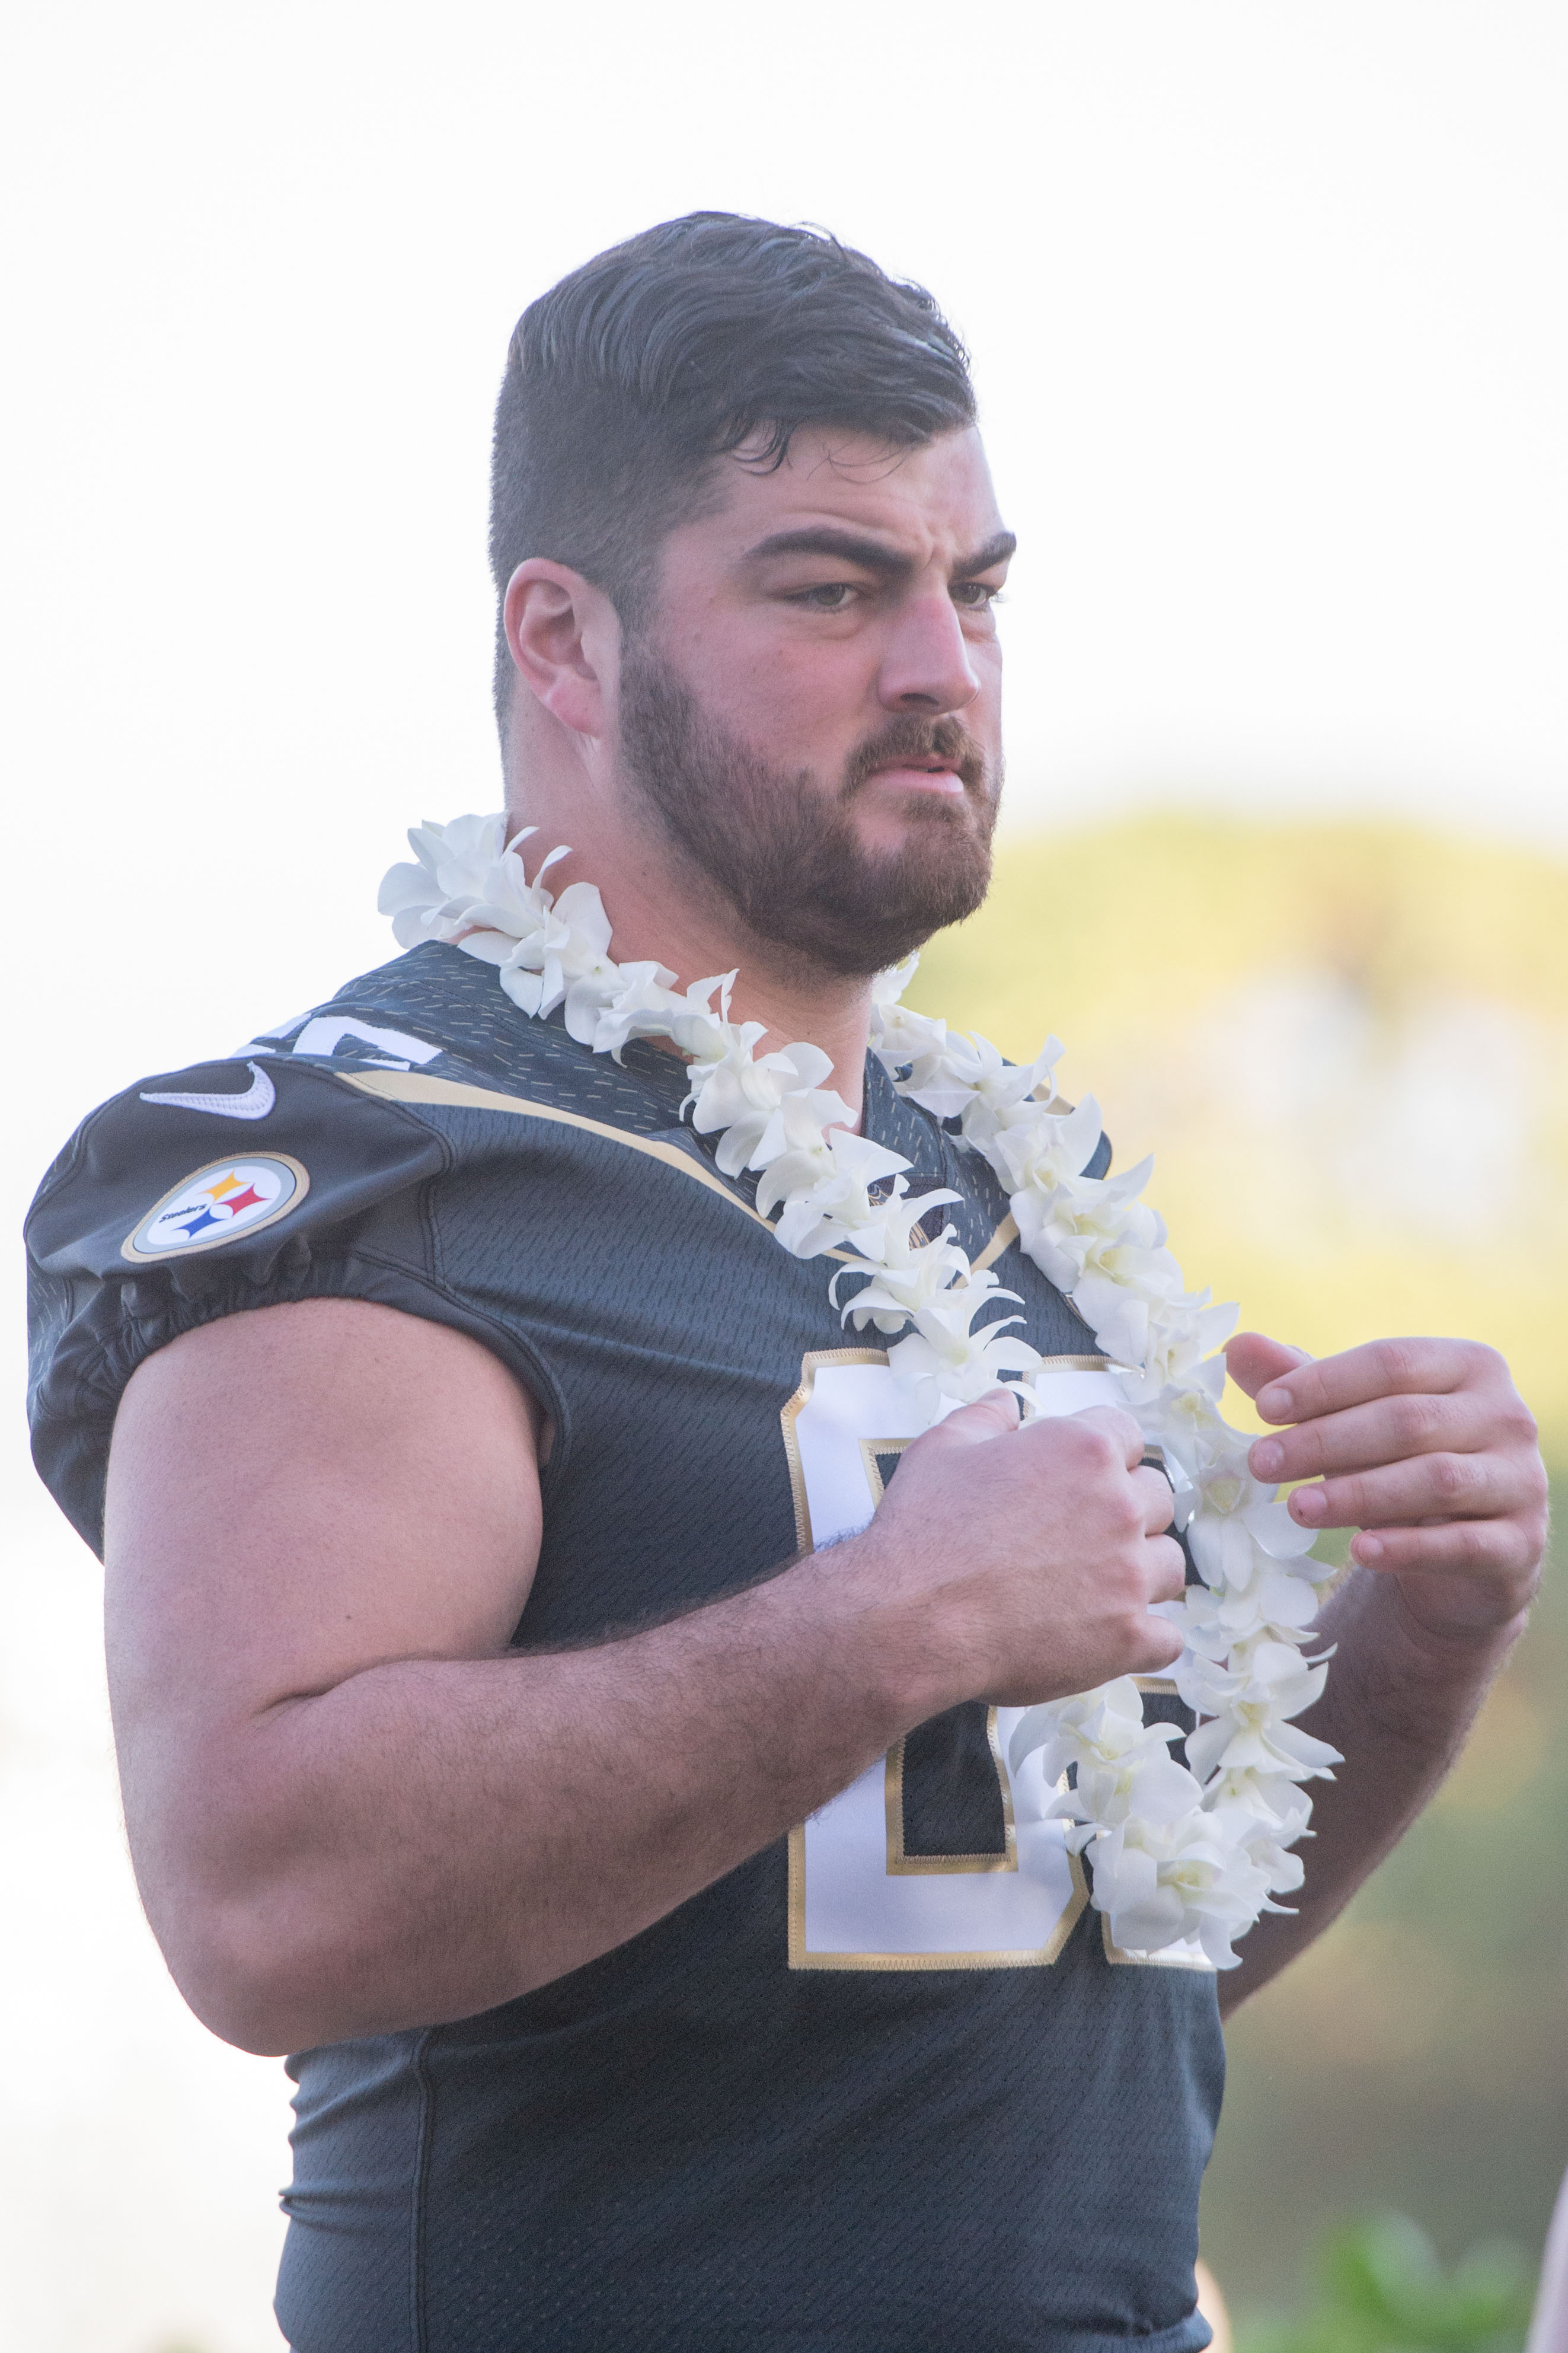 David DeCastro Pro Football Rumors